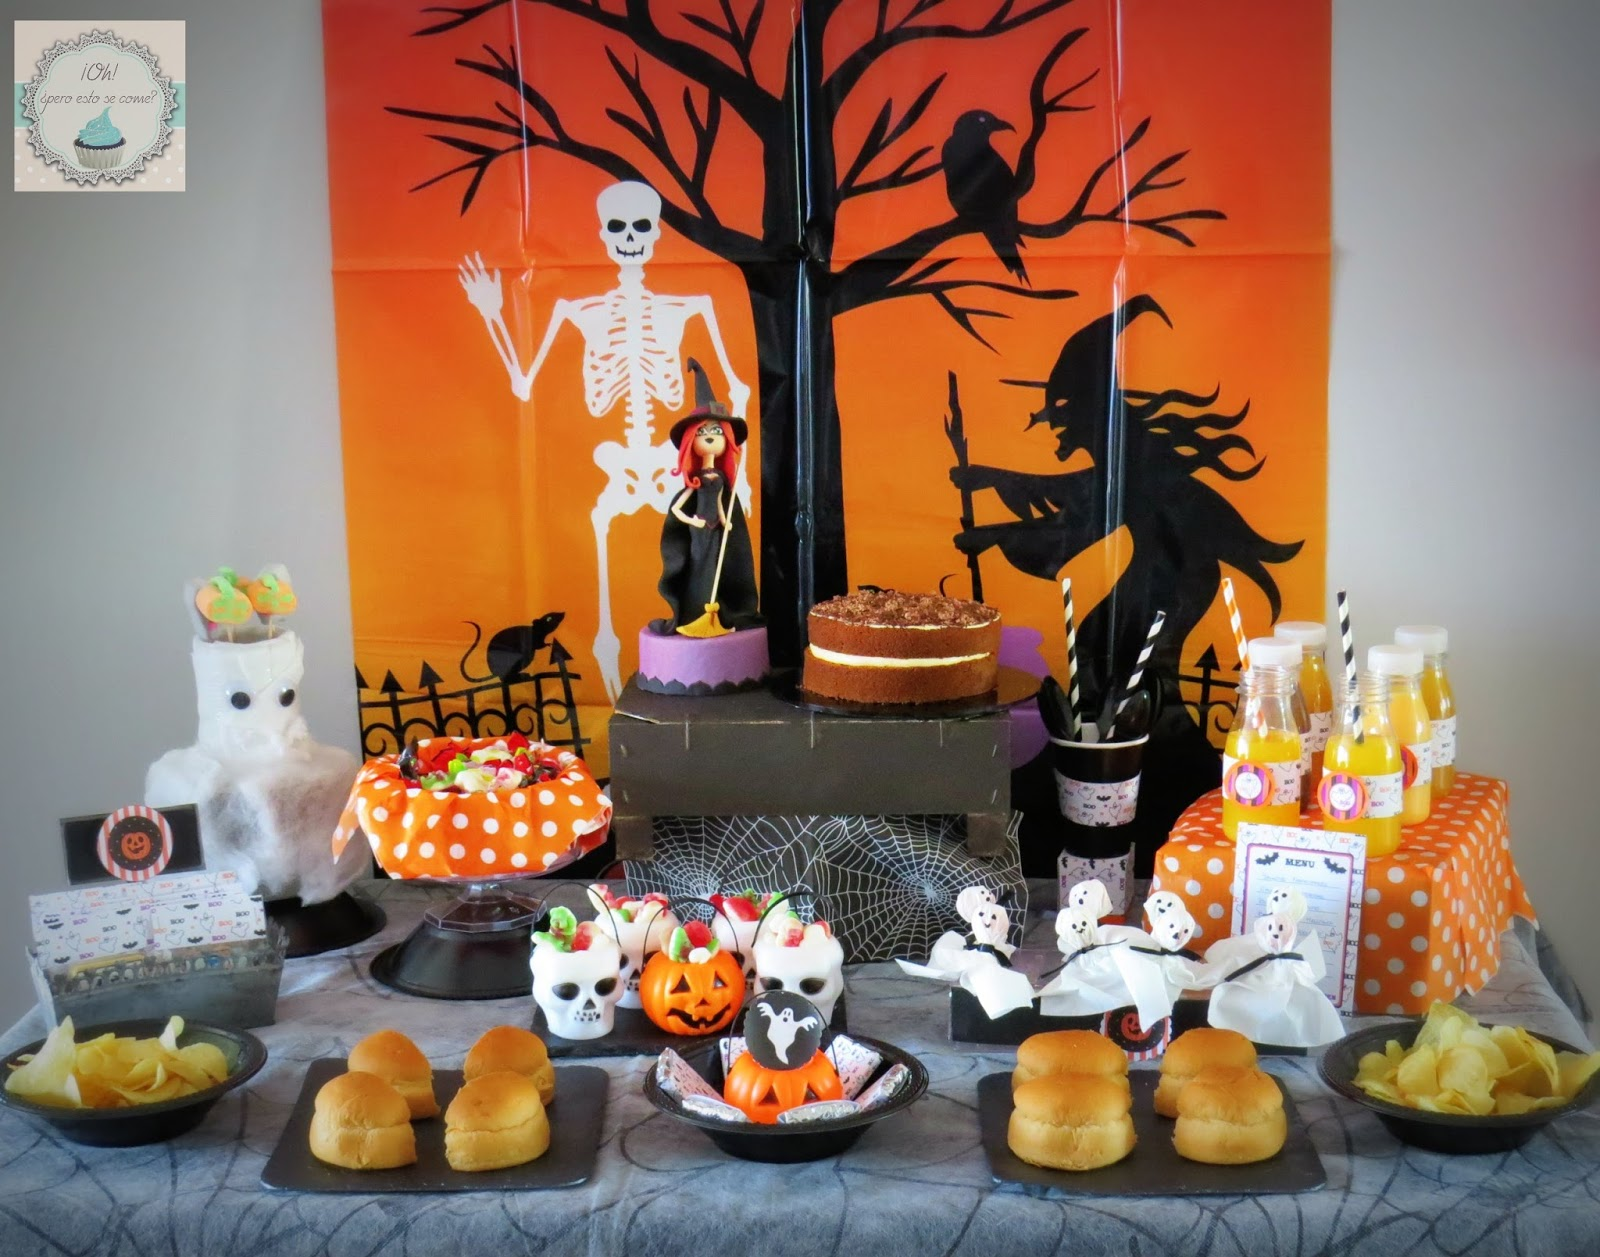 Oh pero esto se come ideas para celebrar halloween - Ideas decoracion halloween fiesta ...